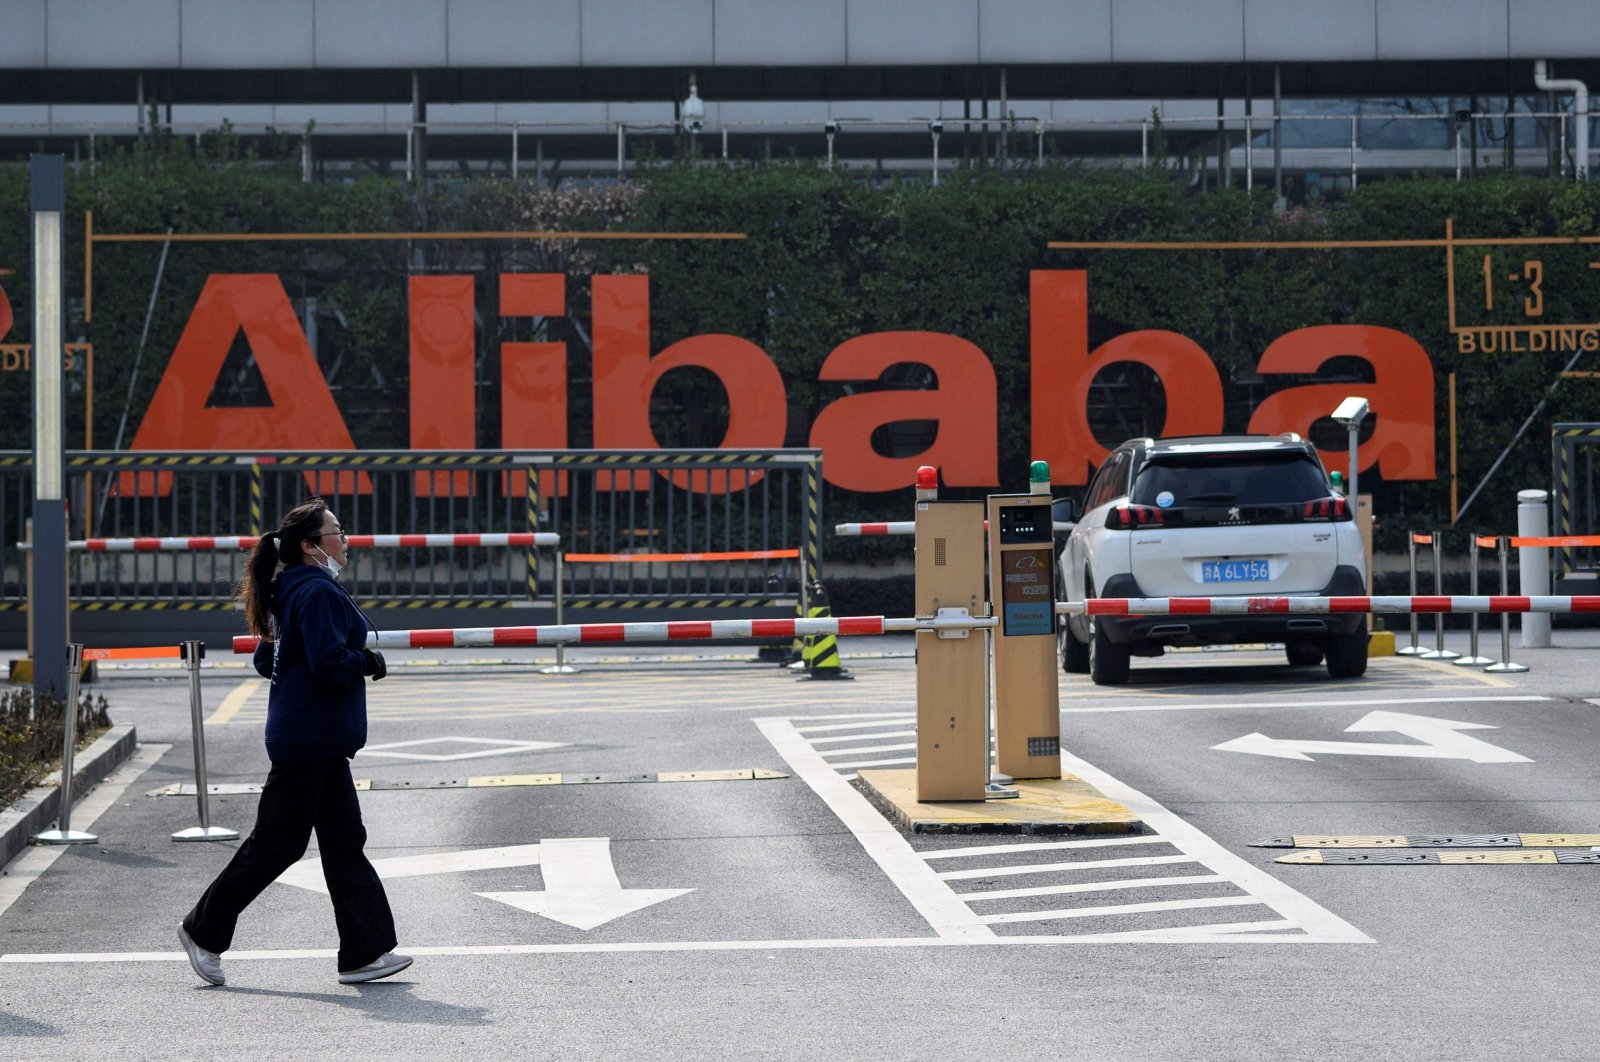 A woman is jogging in front of Alibaba headquarters in Hangzhou, some 175 kilometres (110 miles) southwest of Shanghai, China, Feb. 5, 2020. (AFP Photo)